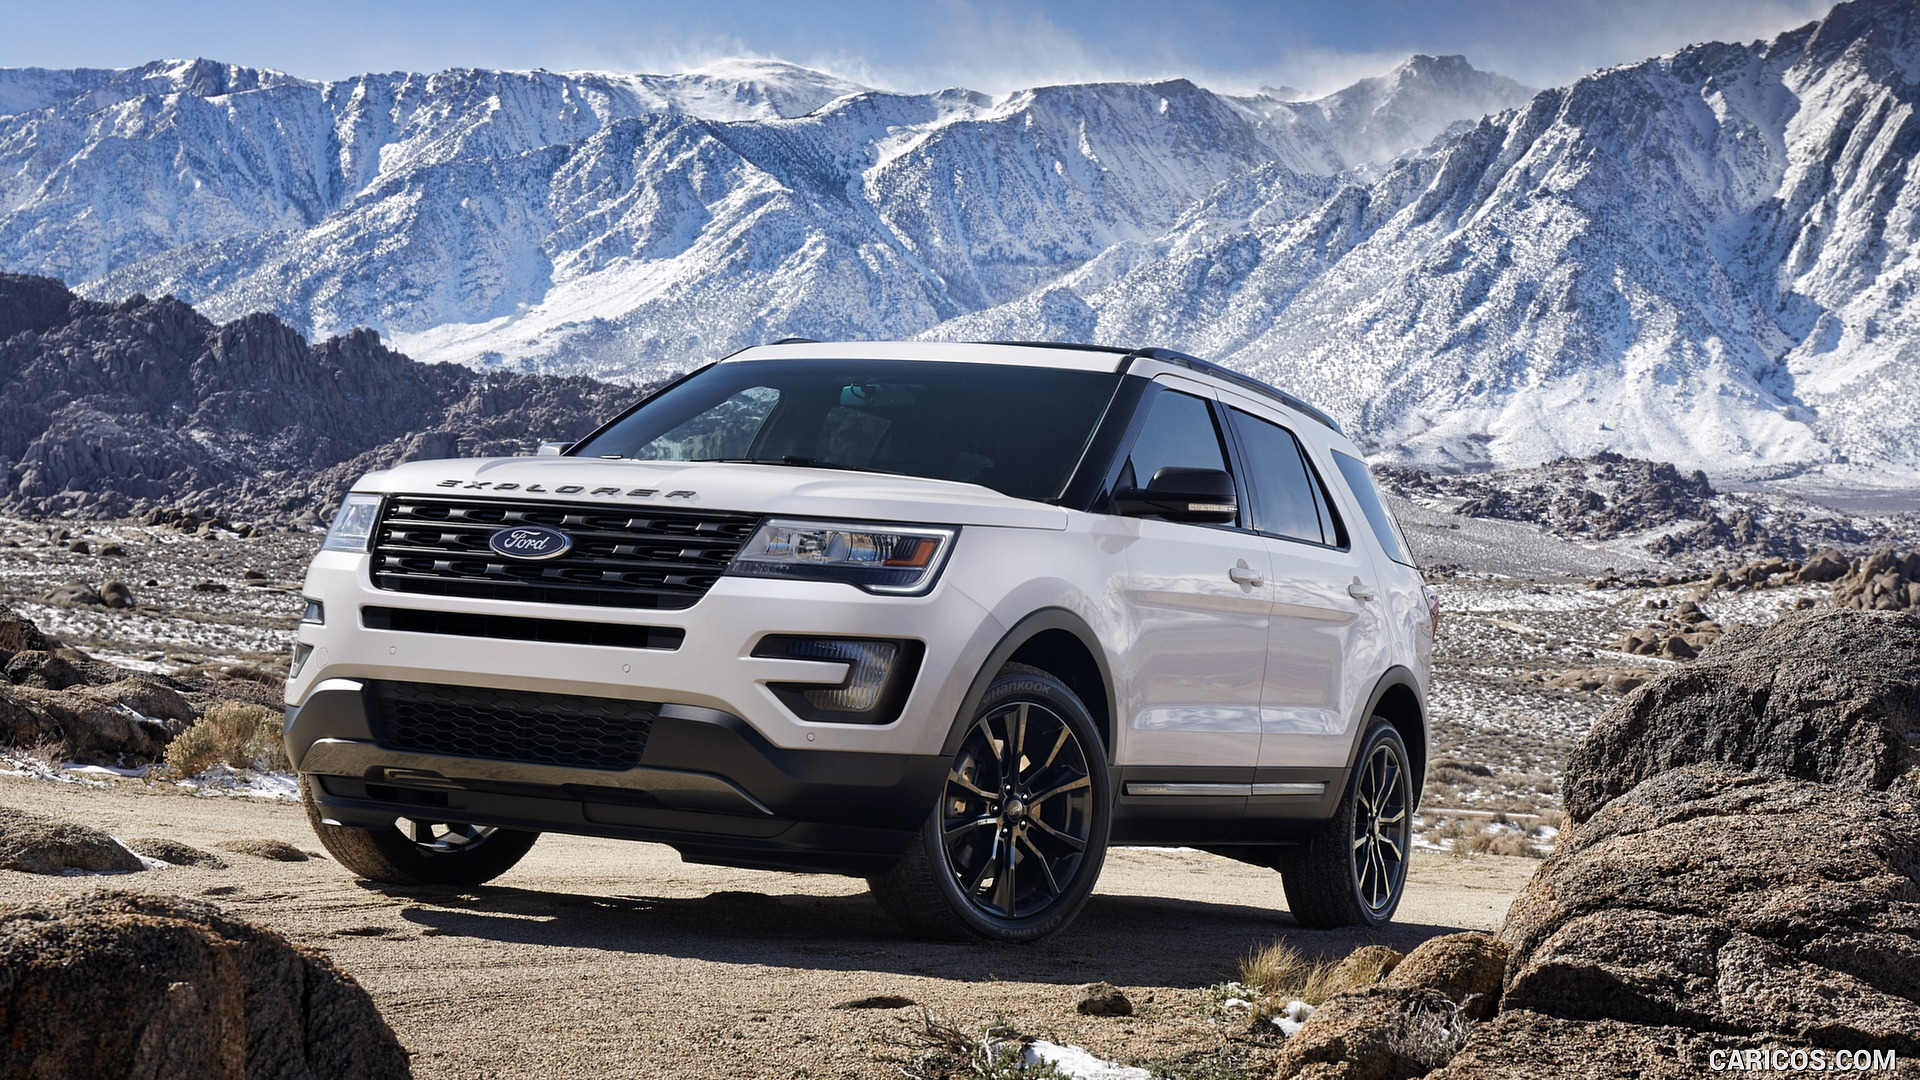 1920x1080 - Ford Explorer Wallpapers 4